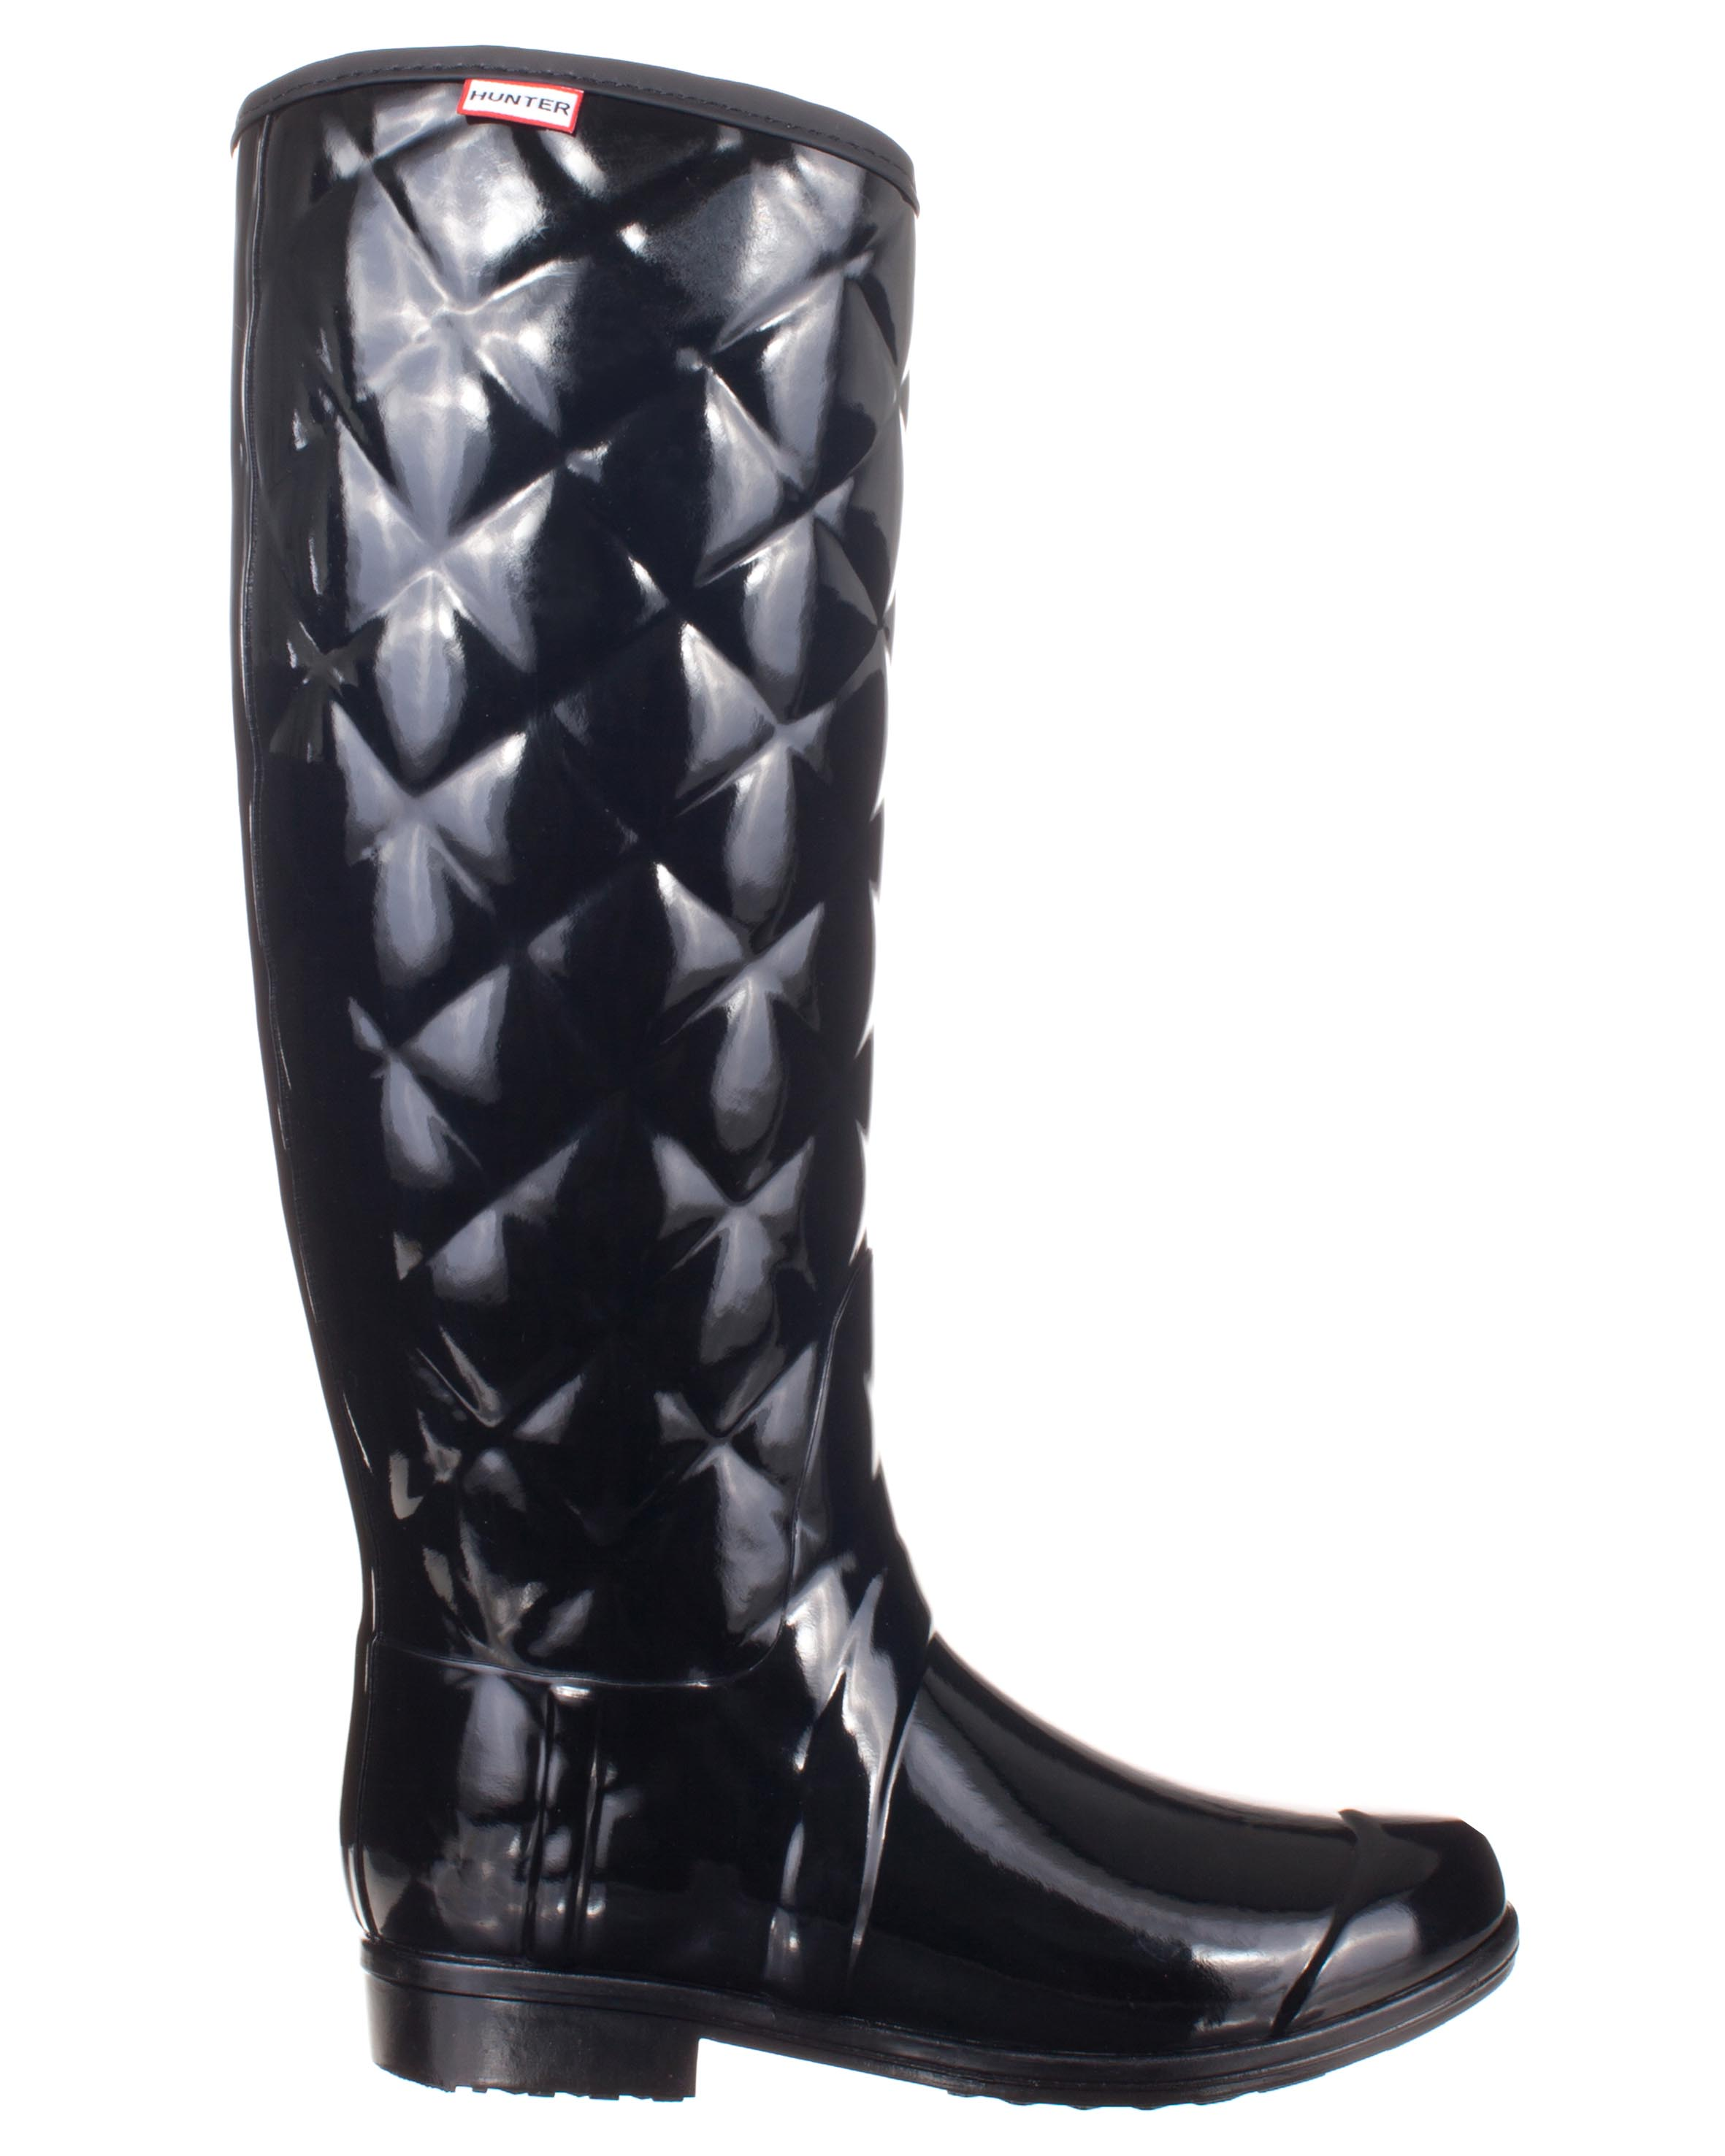 Snow Boots | Snow Boots Online | Buy Womens Snow Boots Australia